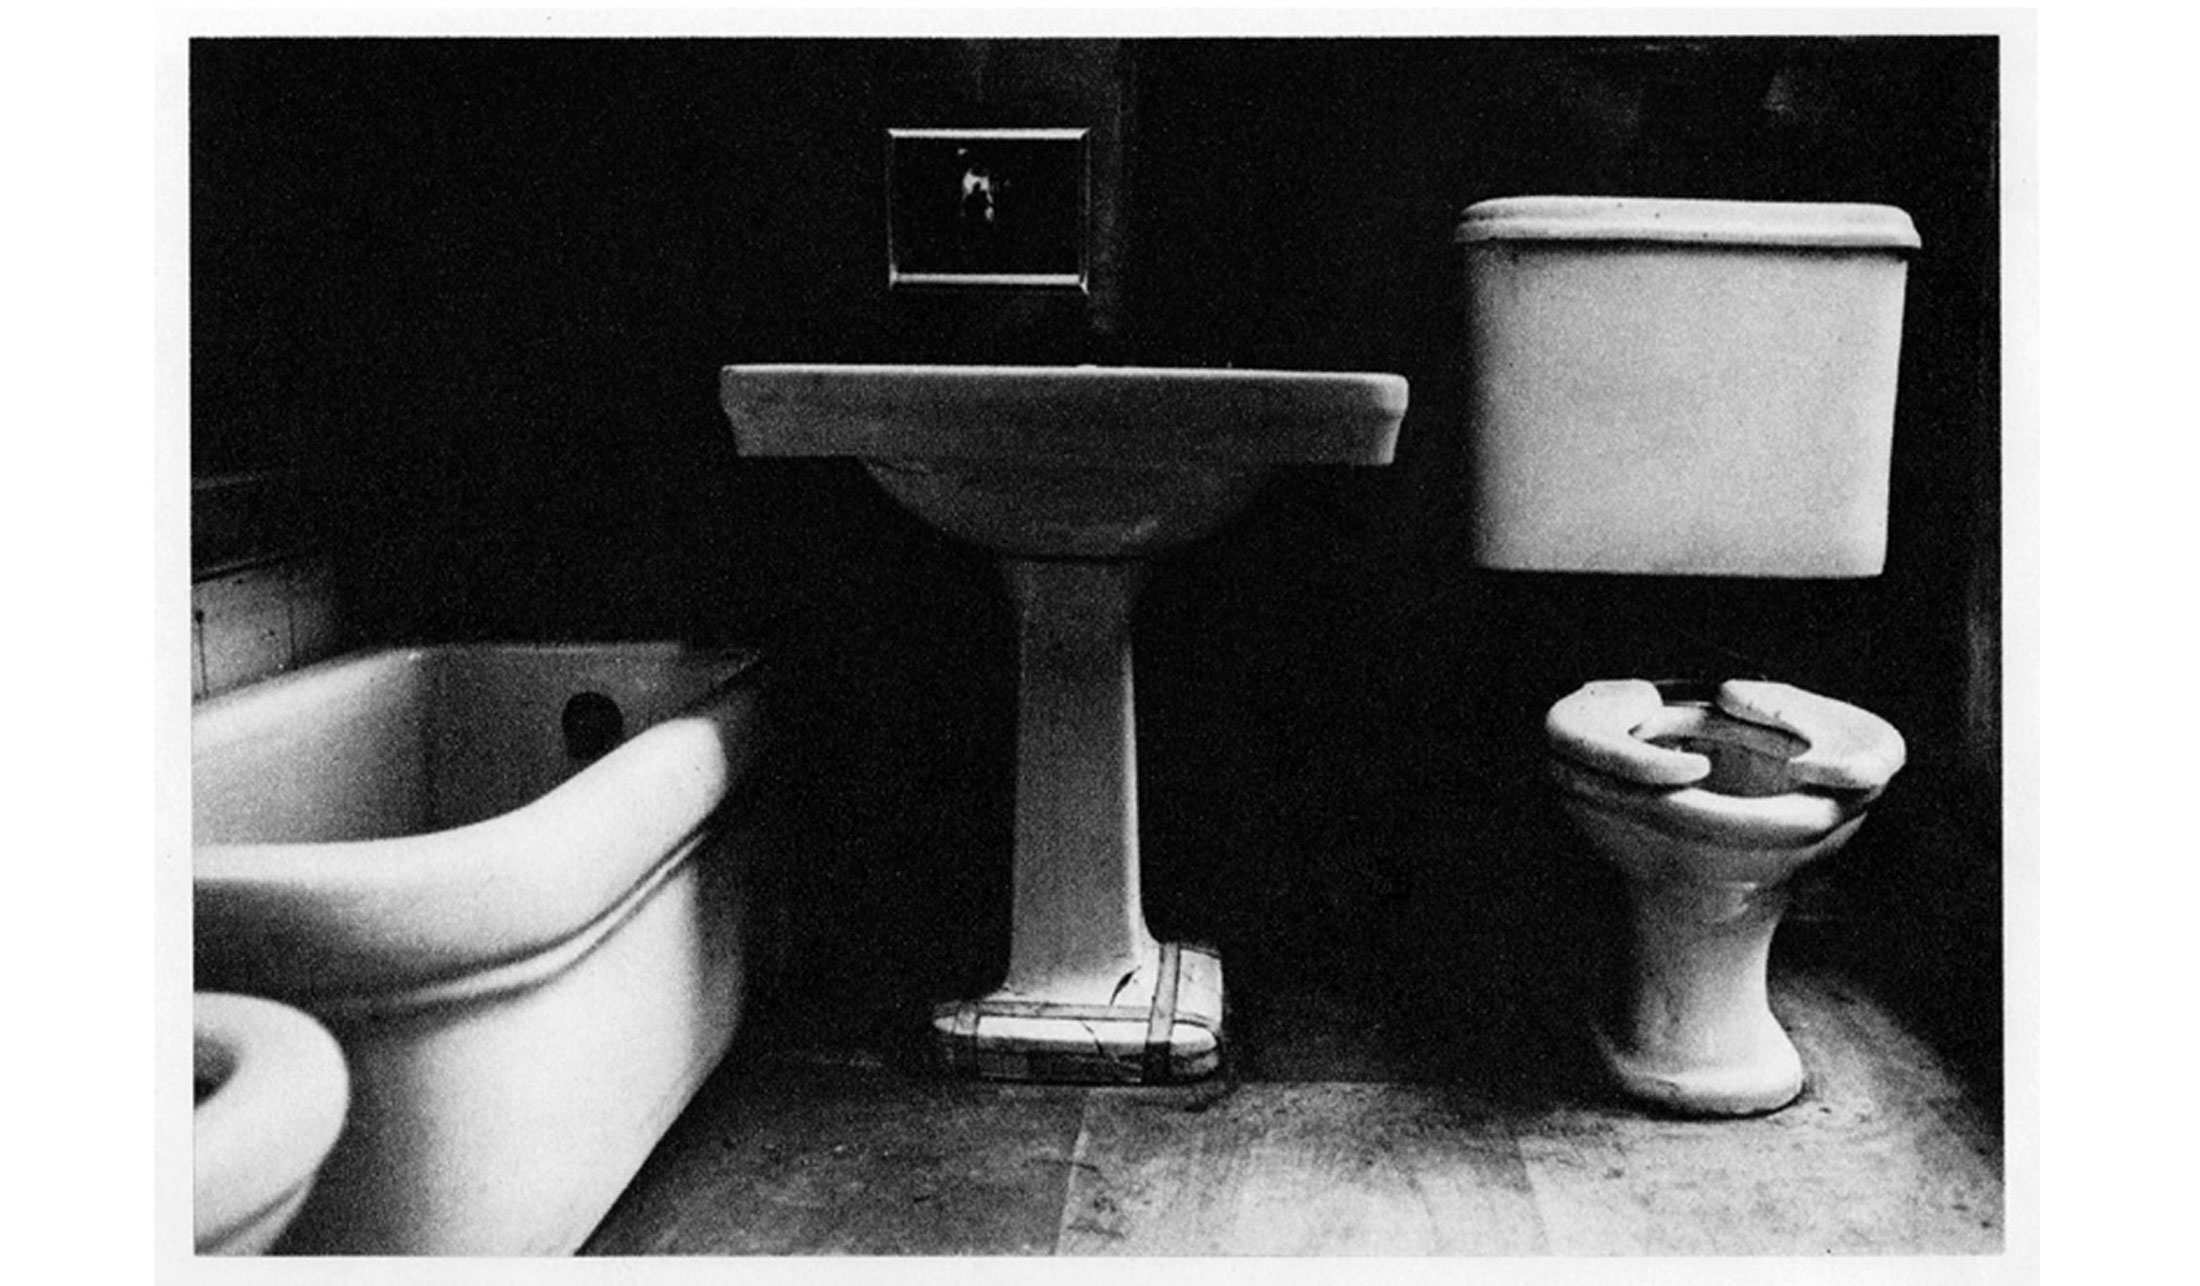 Duane-Michals-Things-are-Queer-Les-choses-sont-bizarres-1973-sequence-photo-01